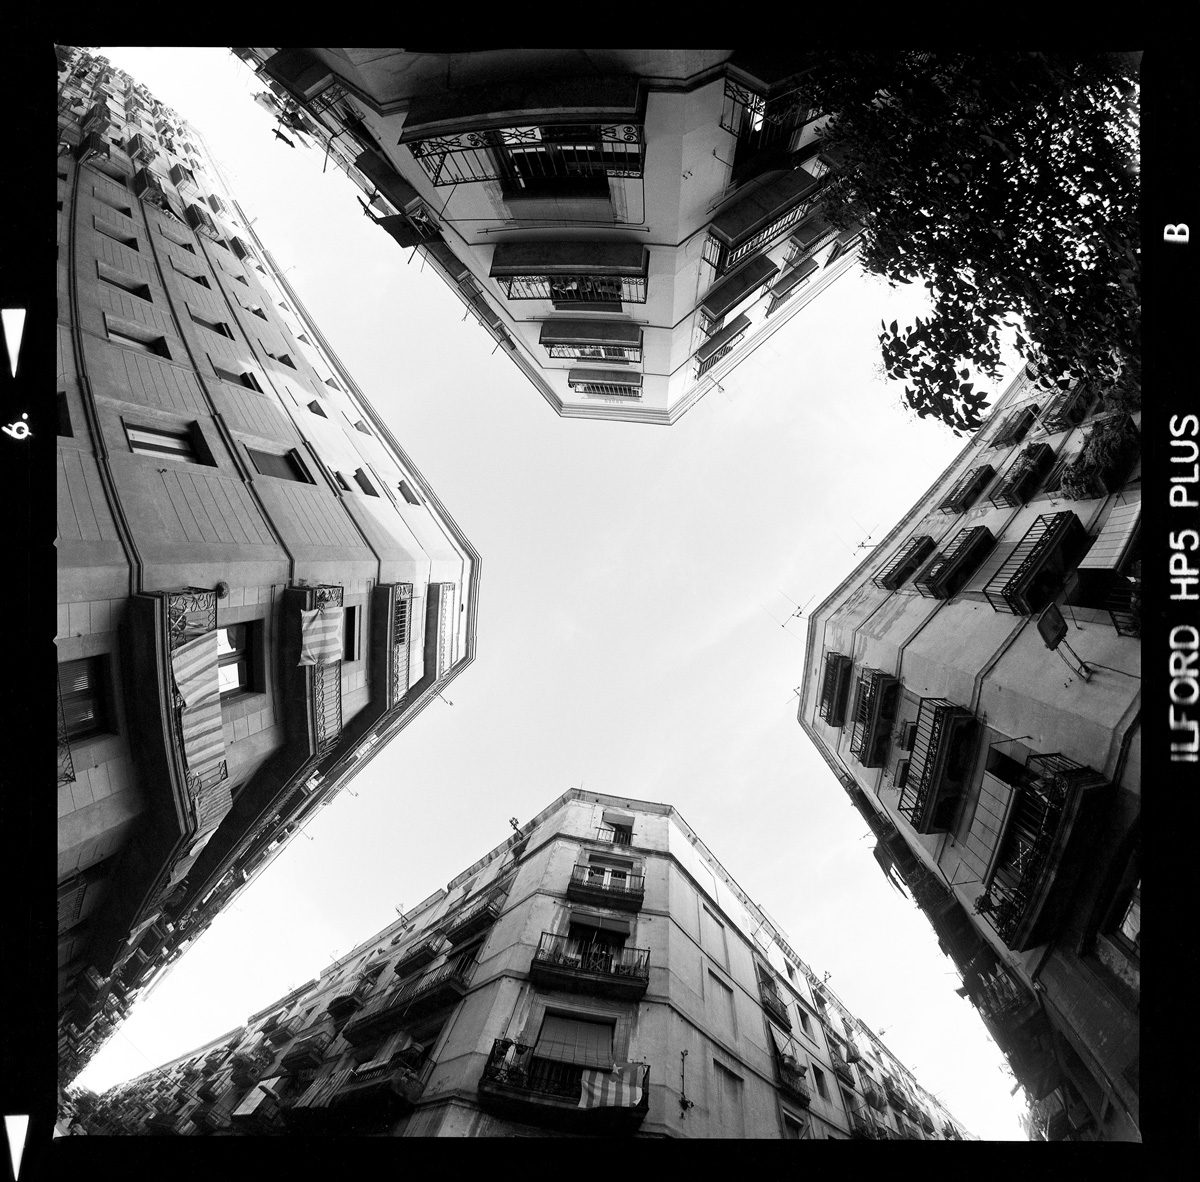 Raval,-Barcelona---Hasselblad-503CX-and-30mm-Distagon-lens